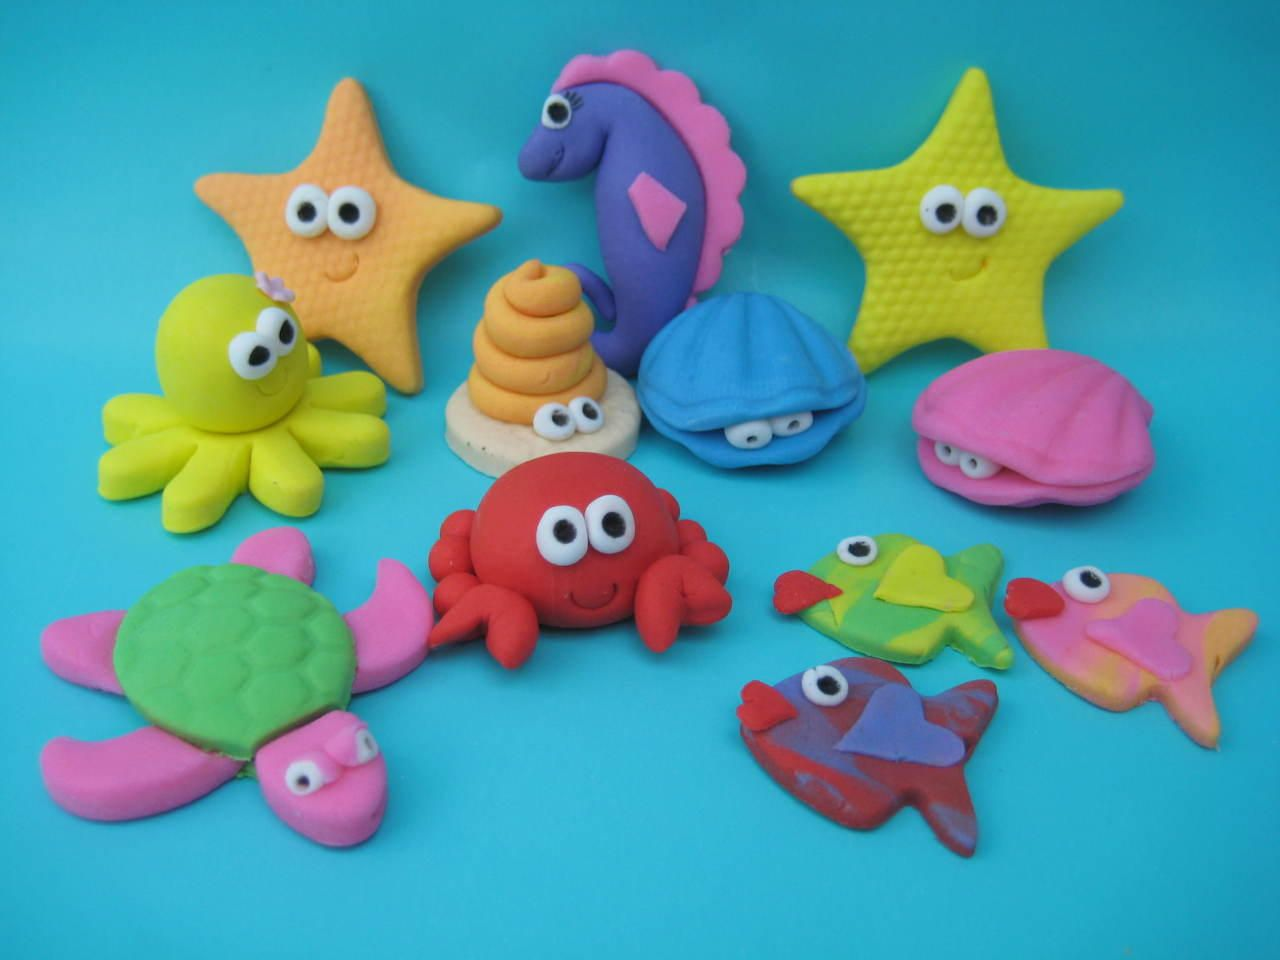 sea creatures cake decorations - Google Search | fondant ...